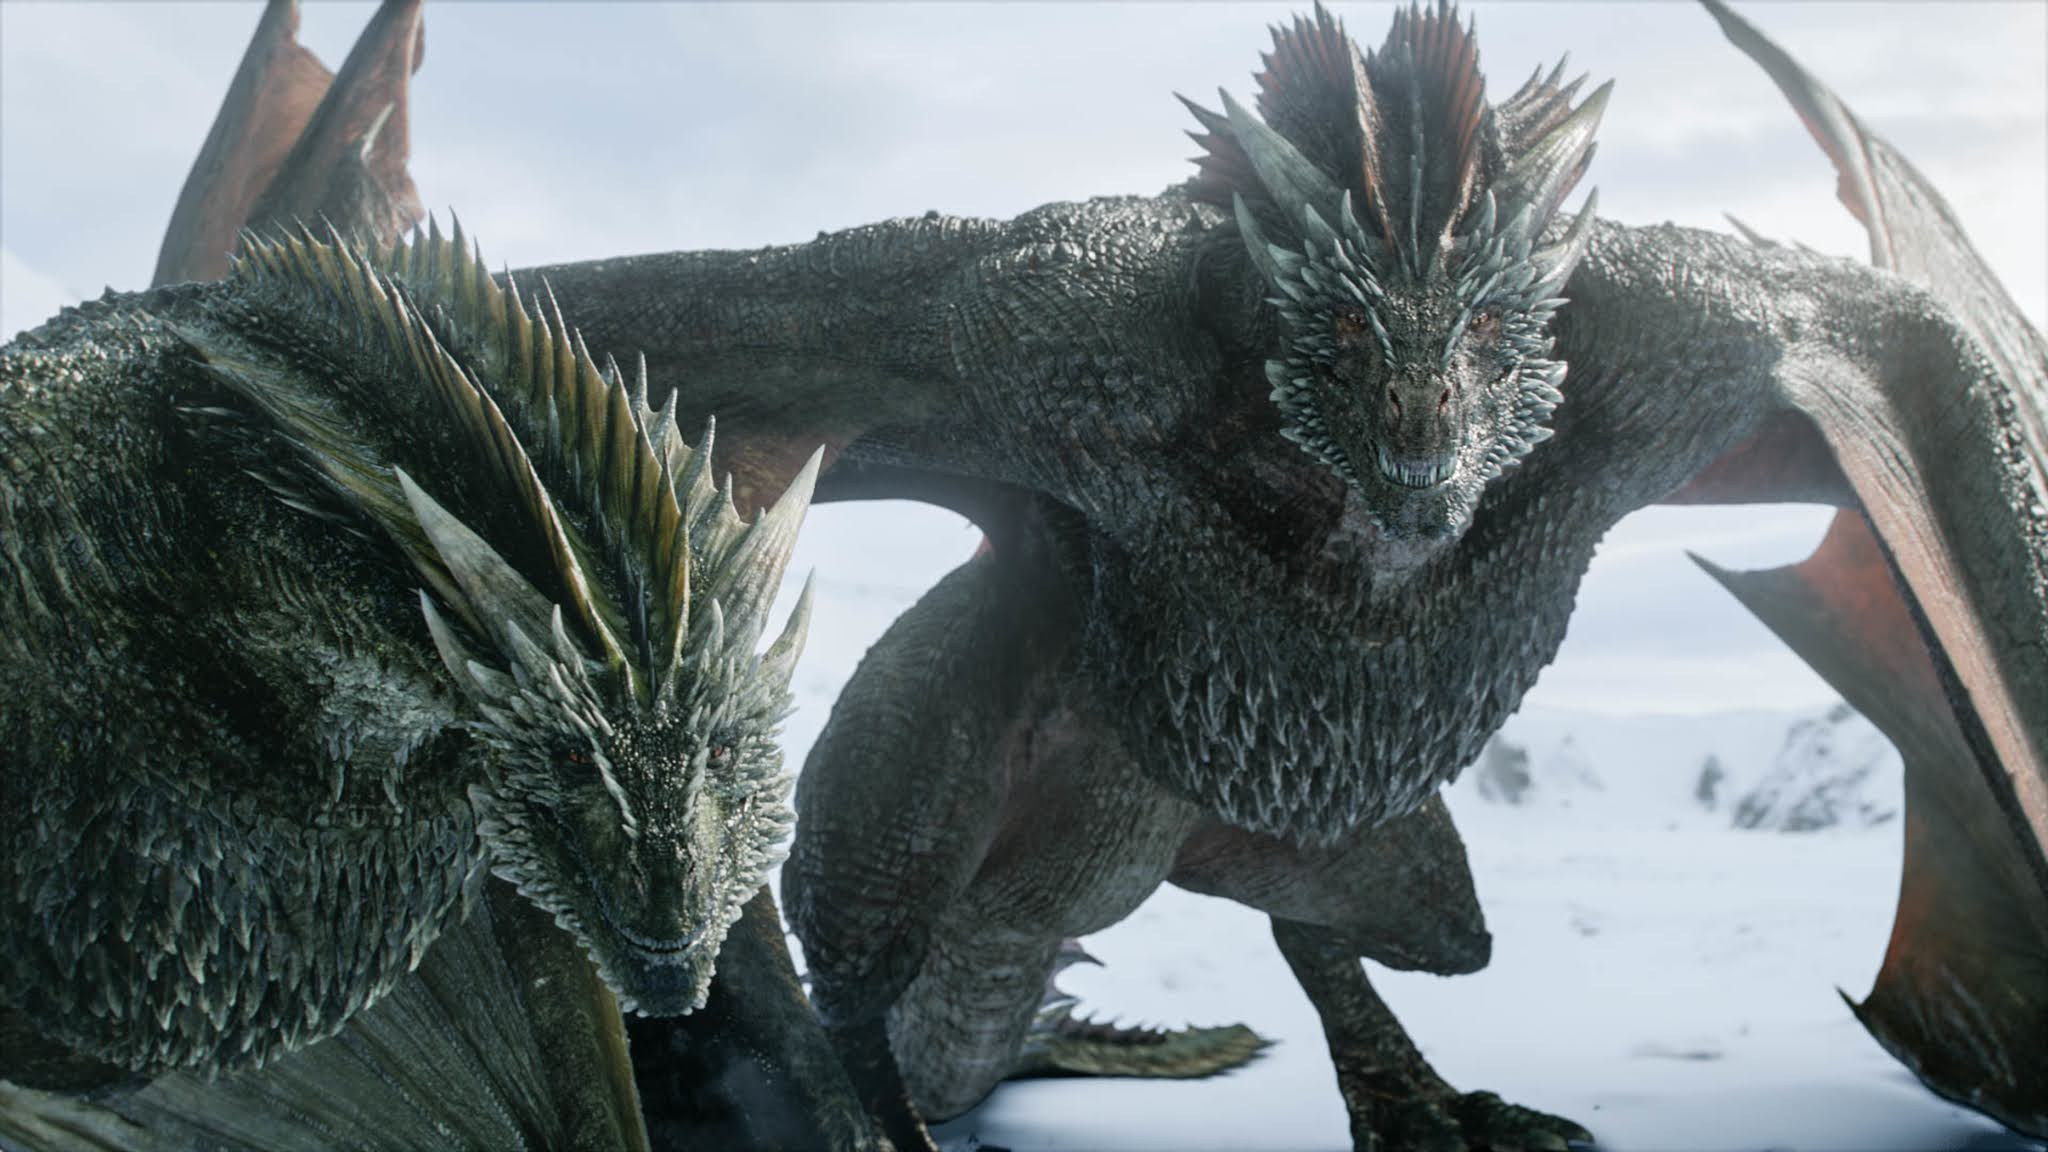 Prequels and series derived from Game of Thrones, the jewel of HBO